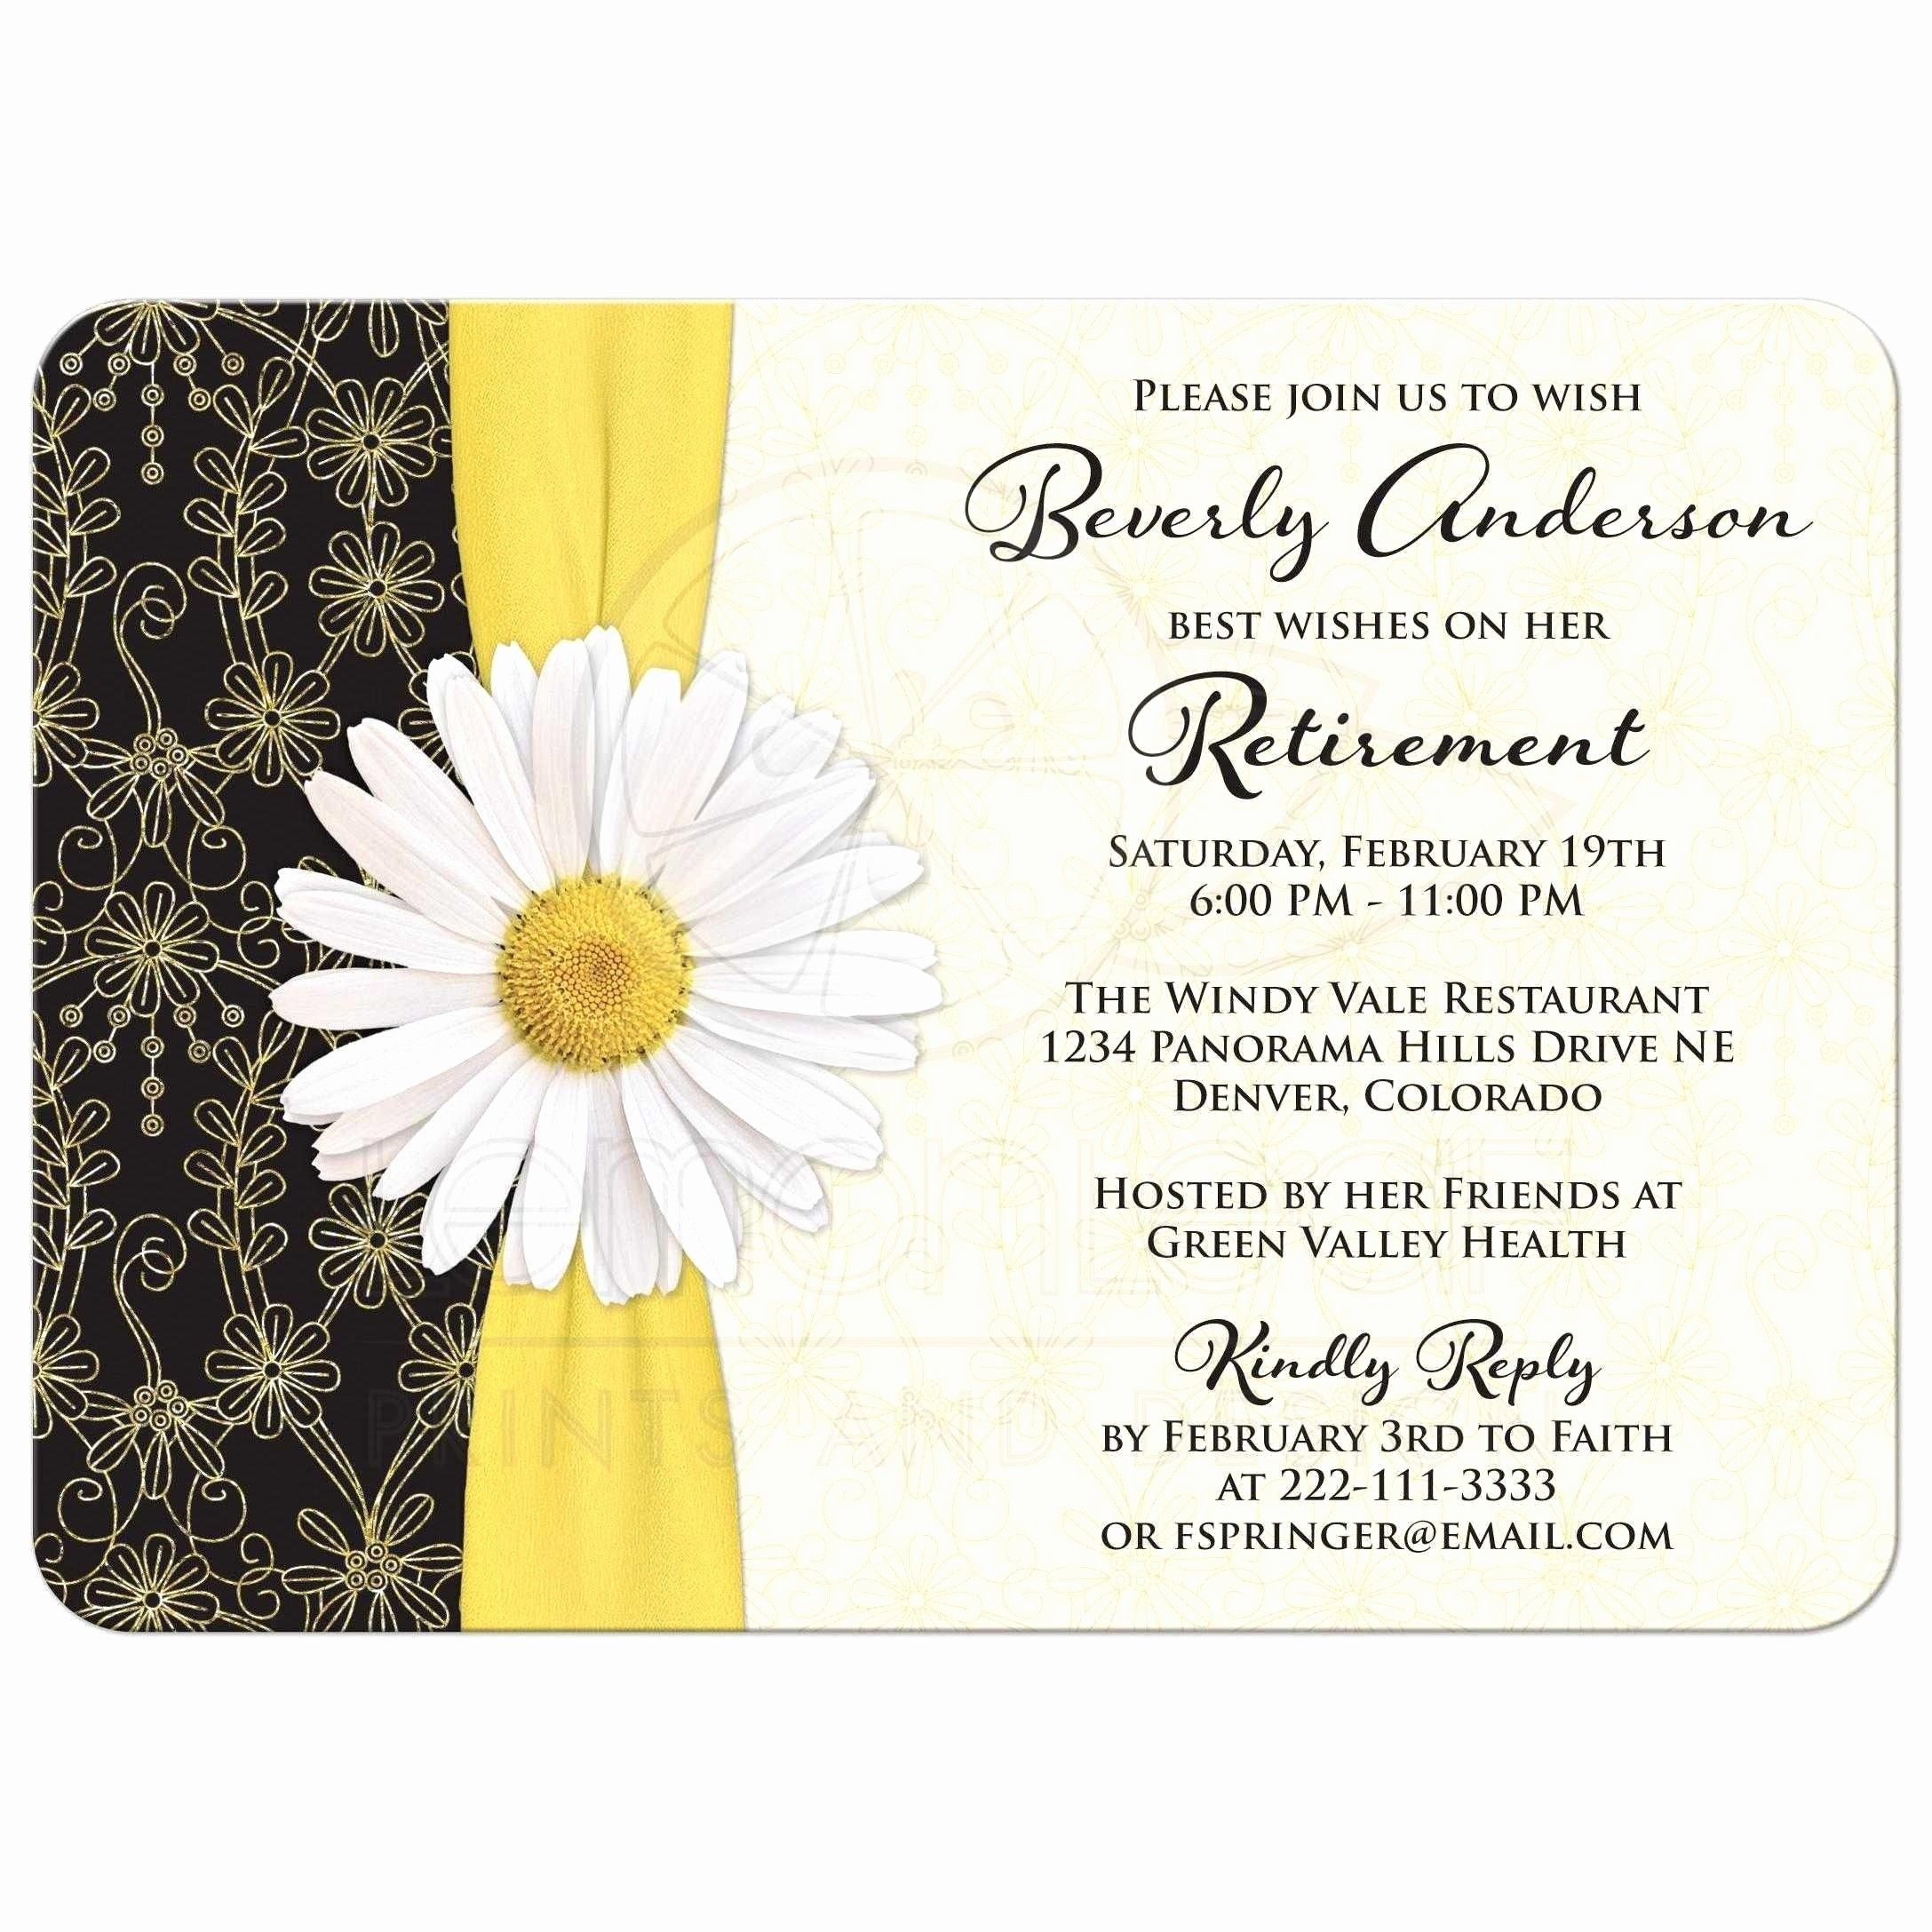 009 Excellent Retirement Party Invite Template Highest Quality  Invitation Online M Word FreeFull